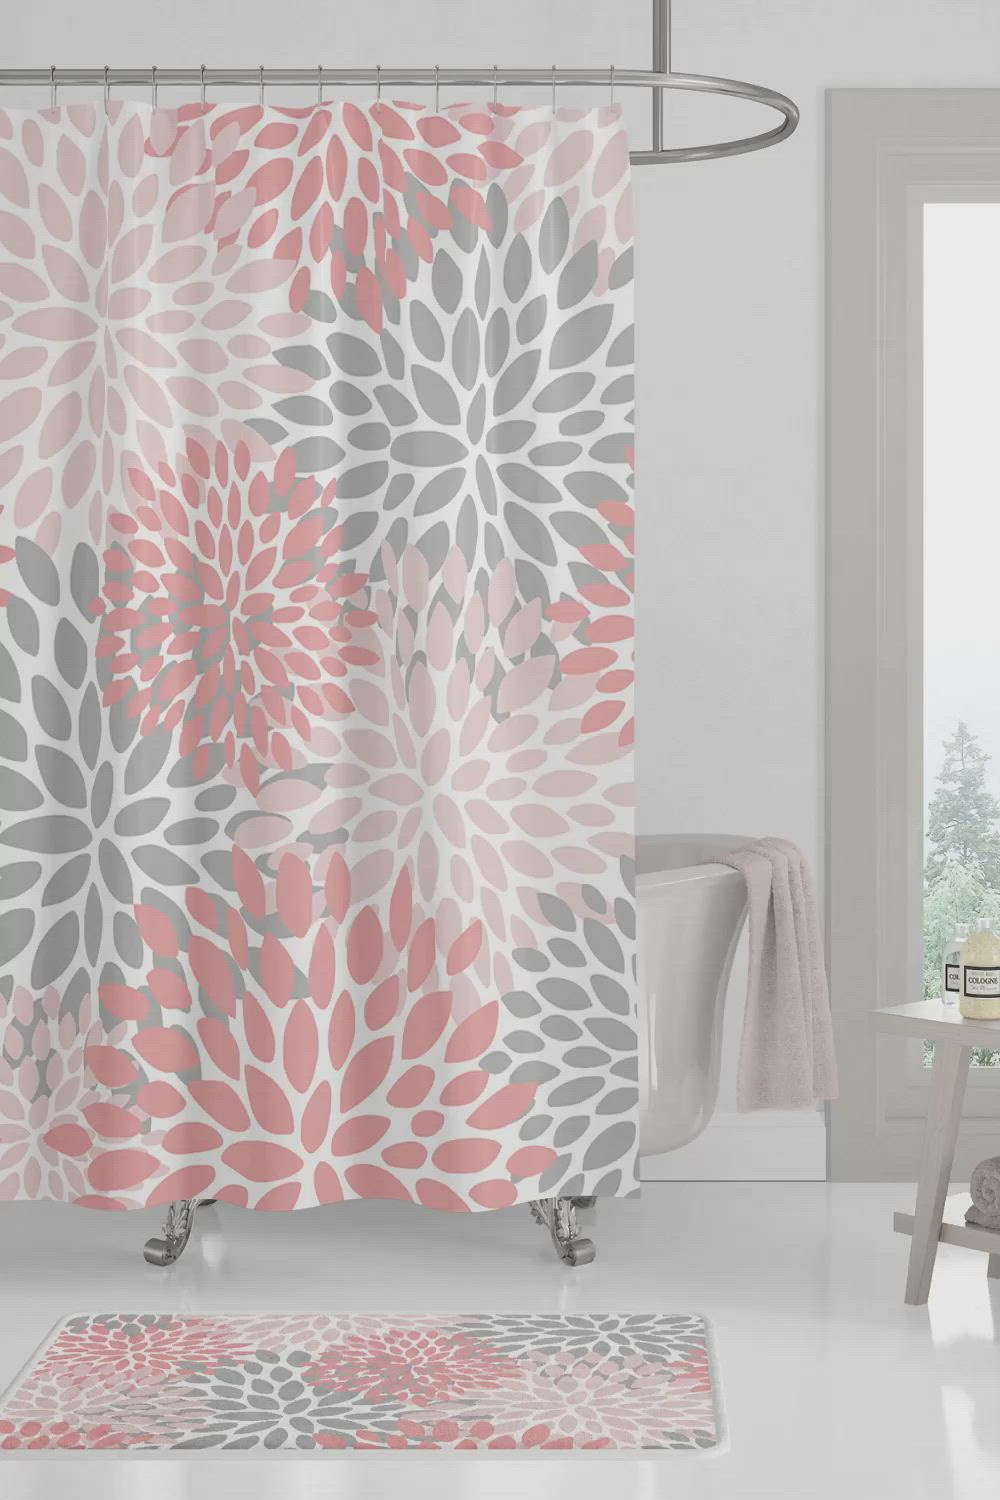 Pin On Home Decor Bathroom Colors